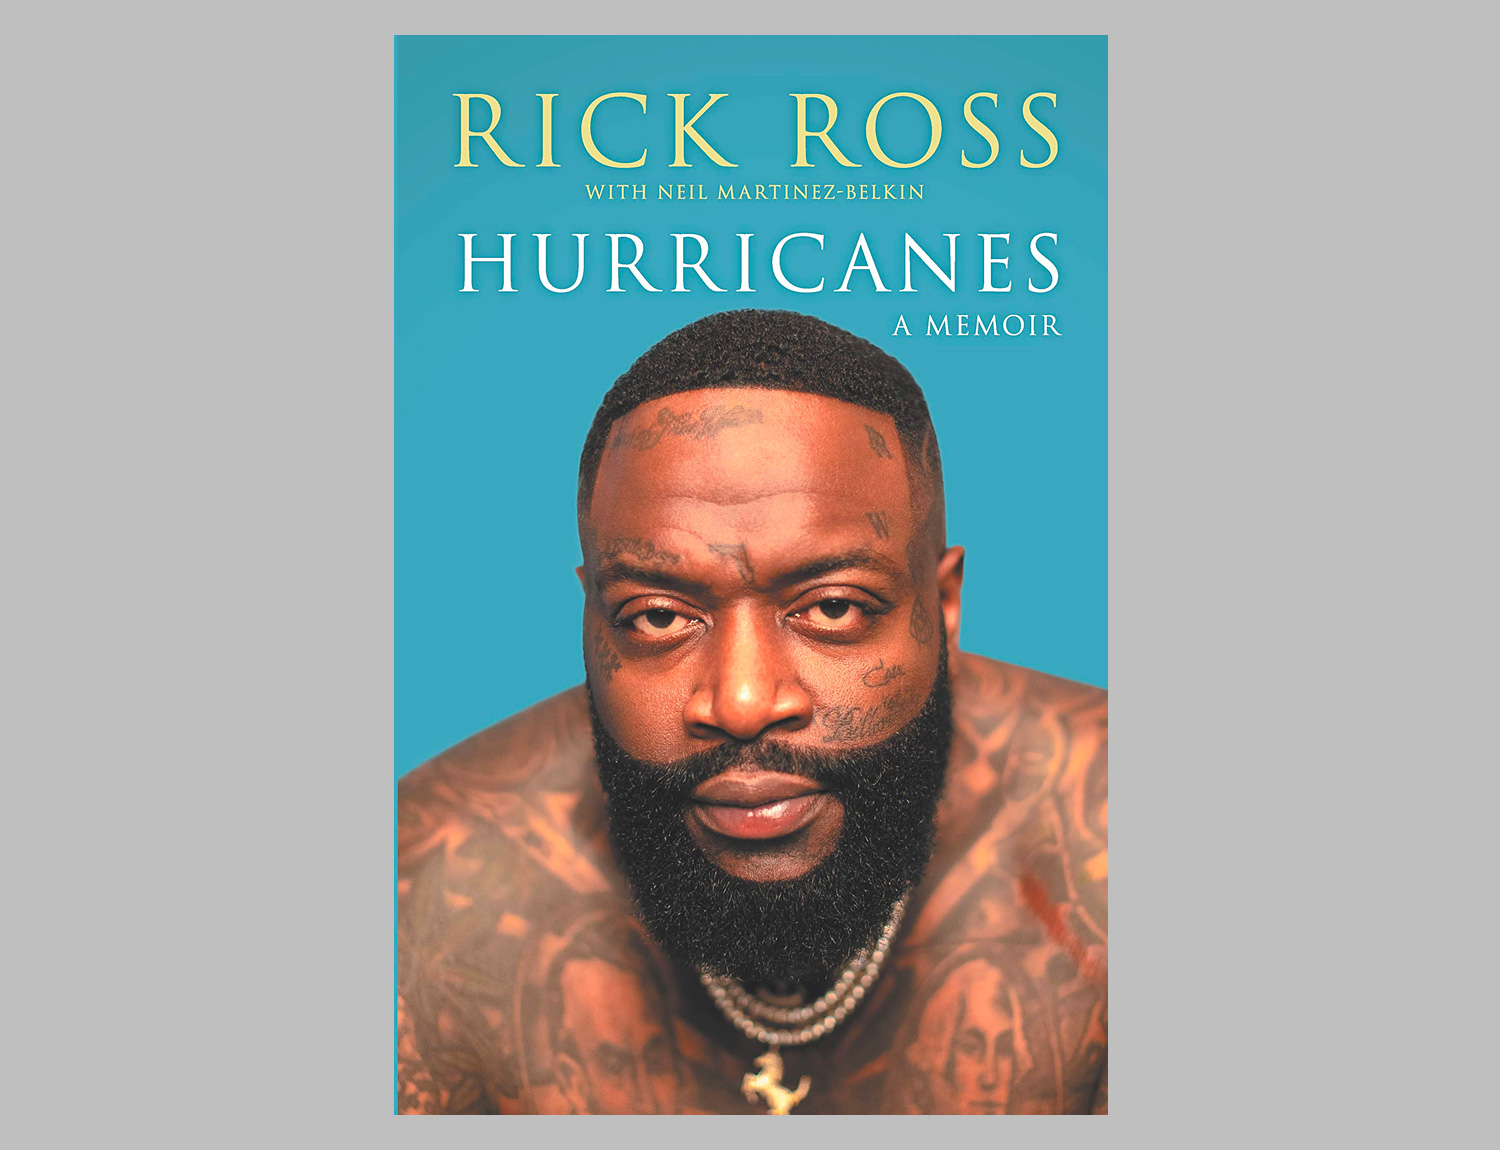 Rick Ross Pens <i>Hurricanes: A Memoir</i> at werd.com